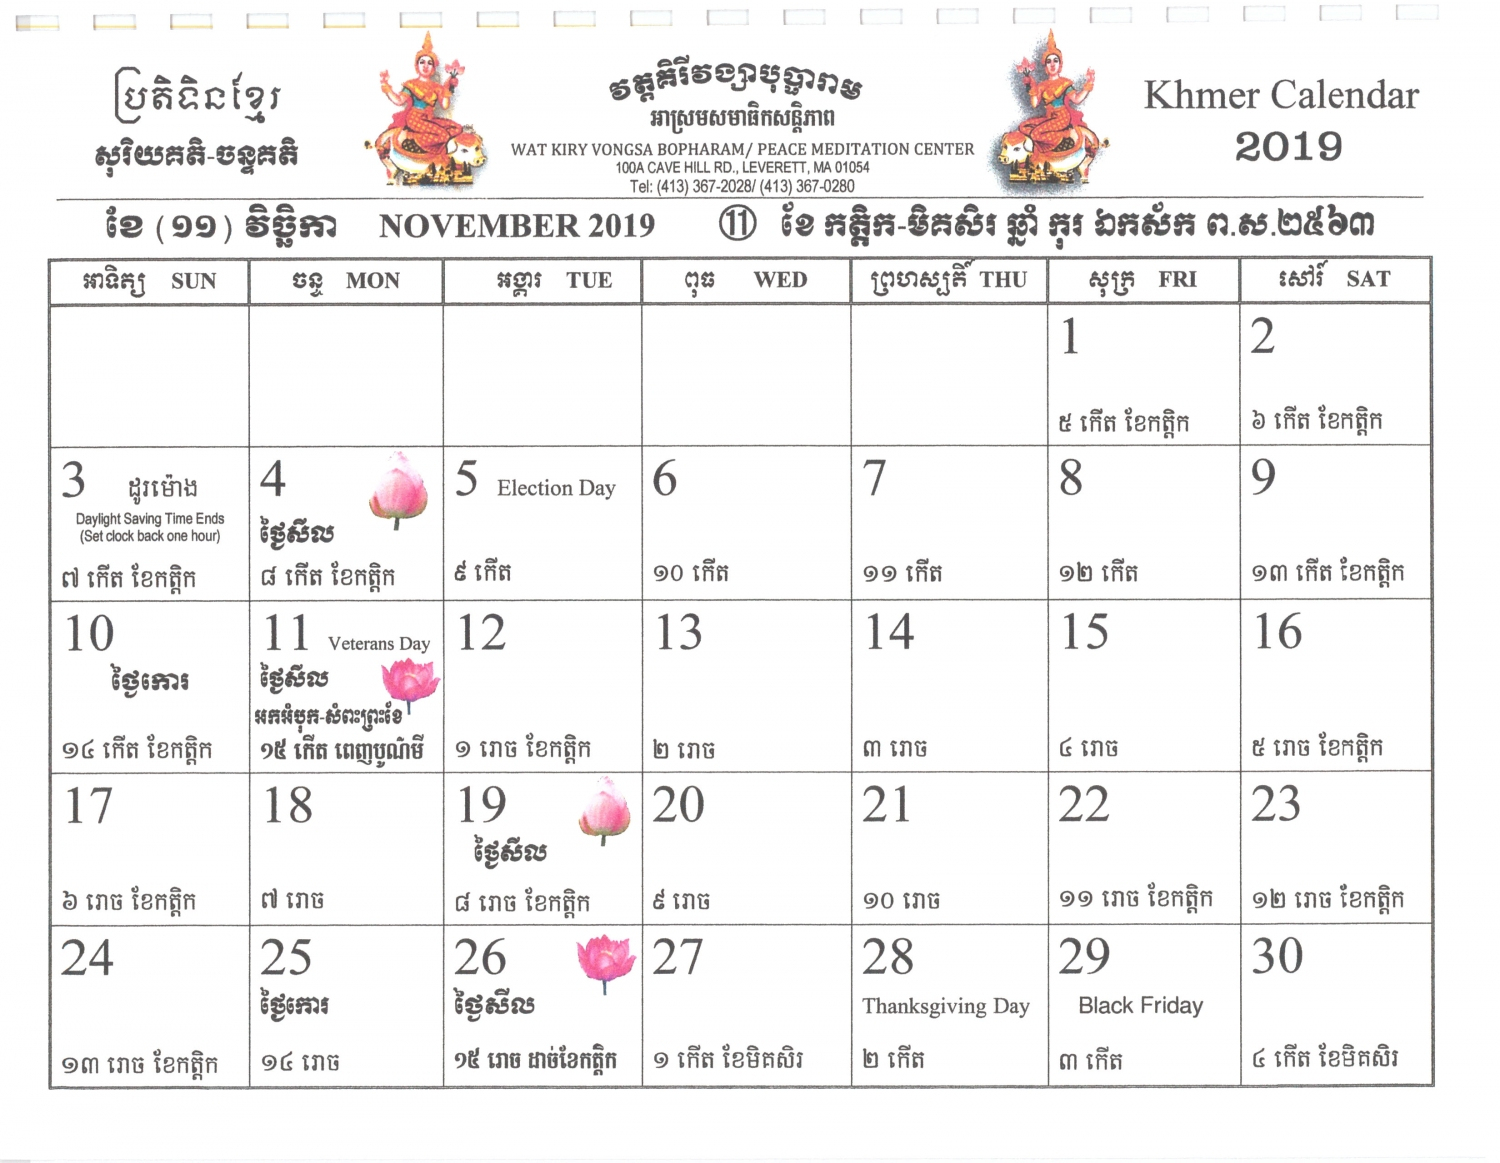 Khmer Calendar 2017 Yearly with Khmer Calendar November 2020